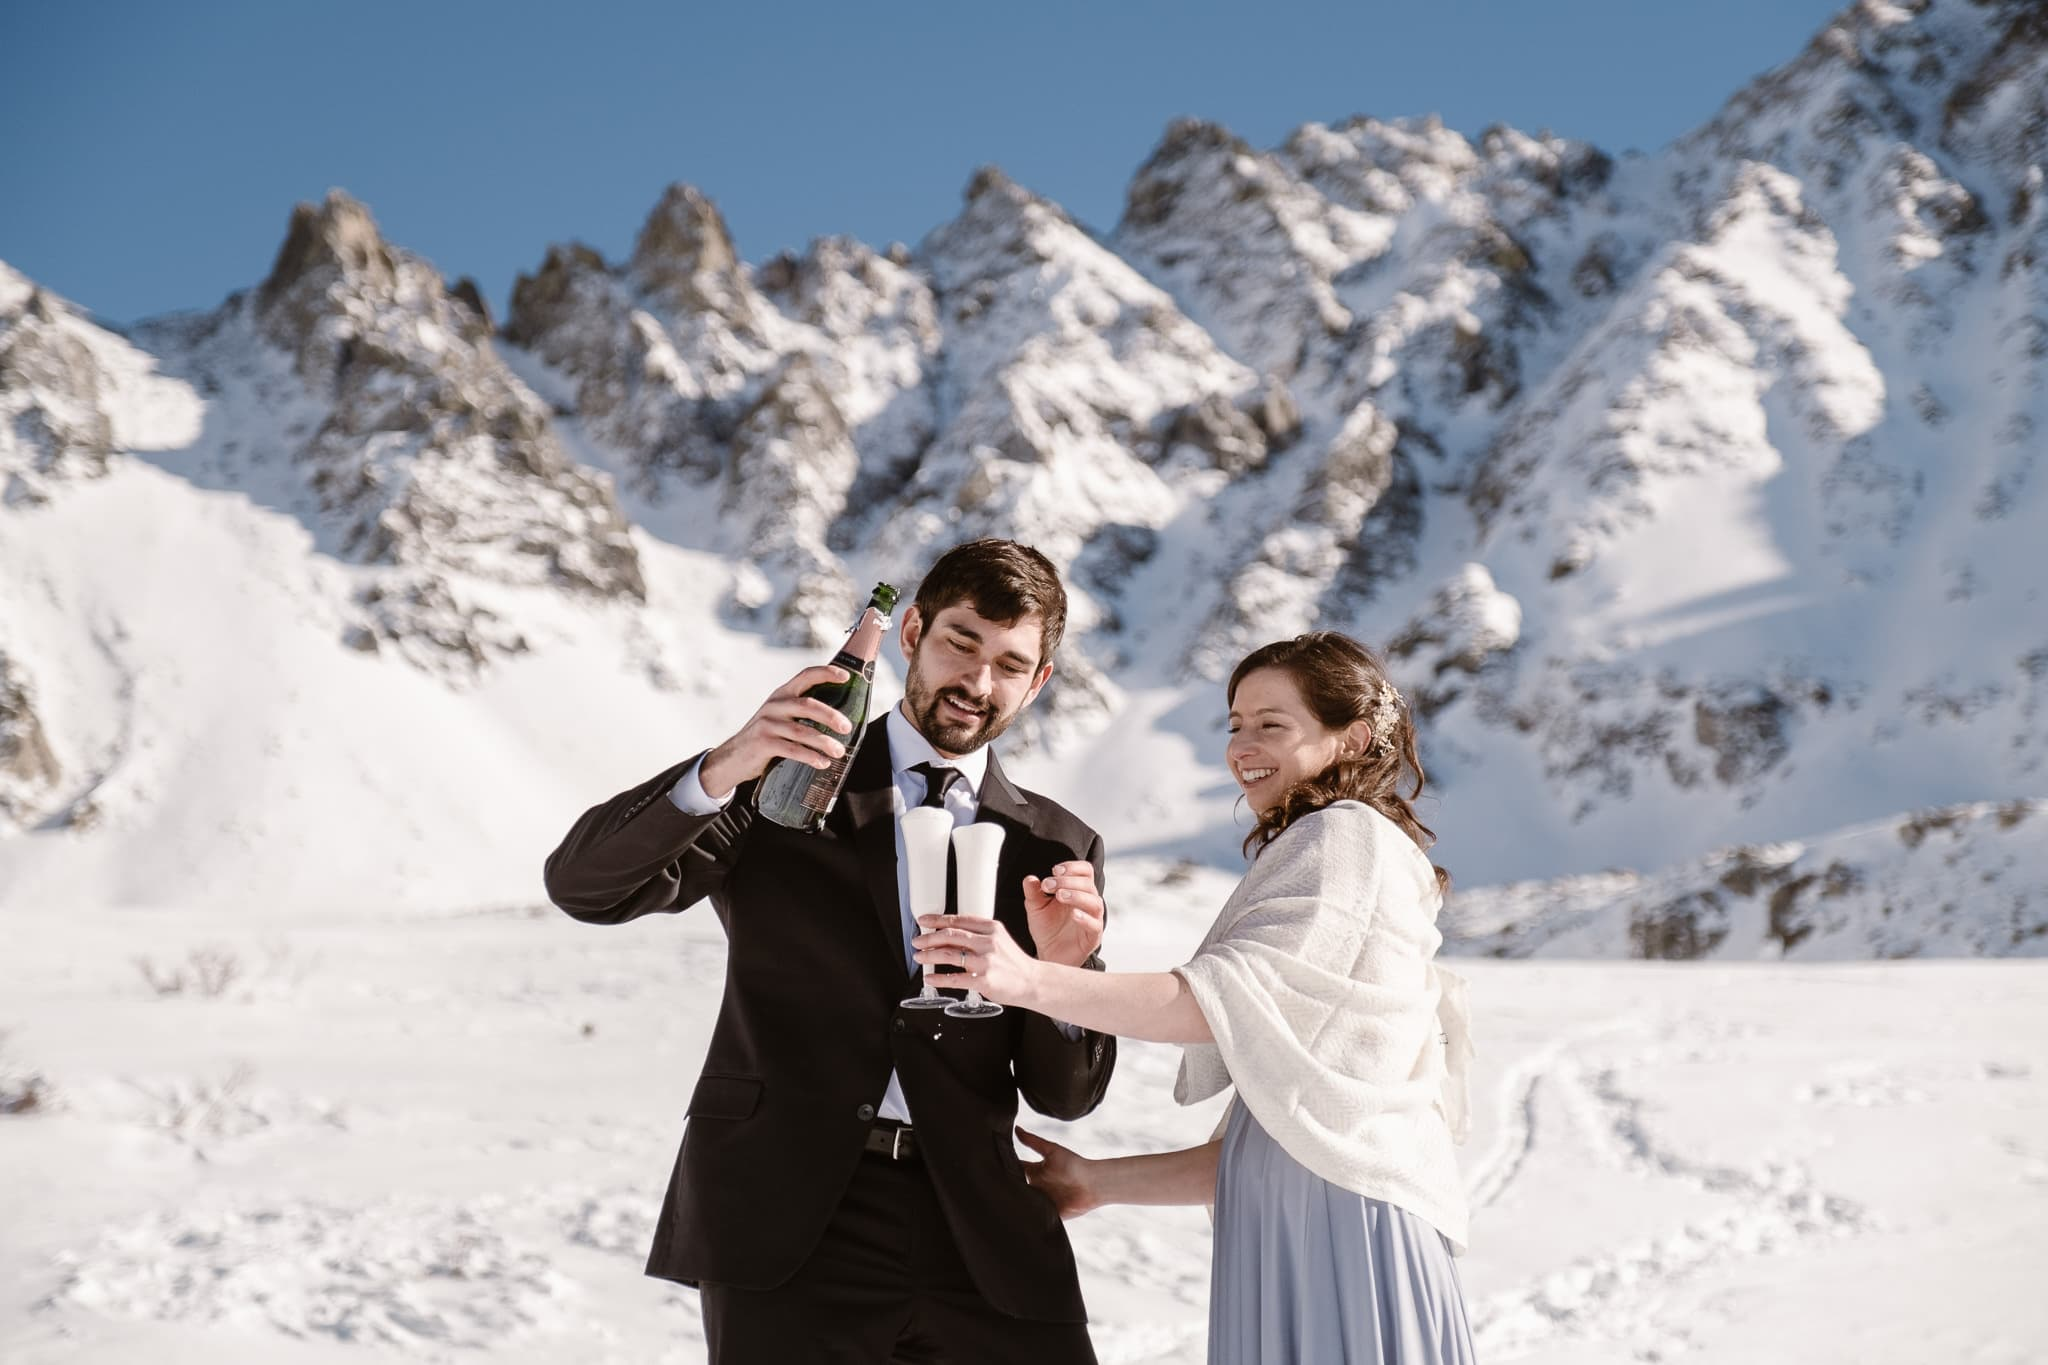 Bride and groom popping champagne bottle, winter mountain elopement, Colorado ski wedding, backcountry skiing elopement